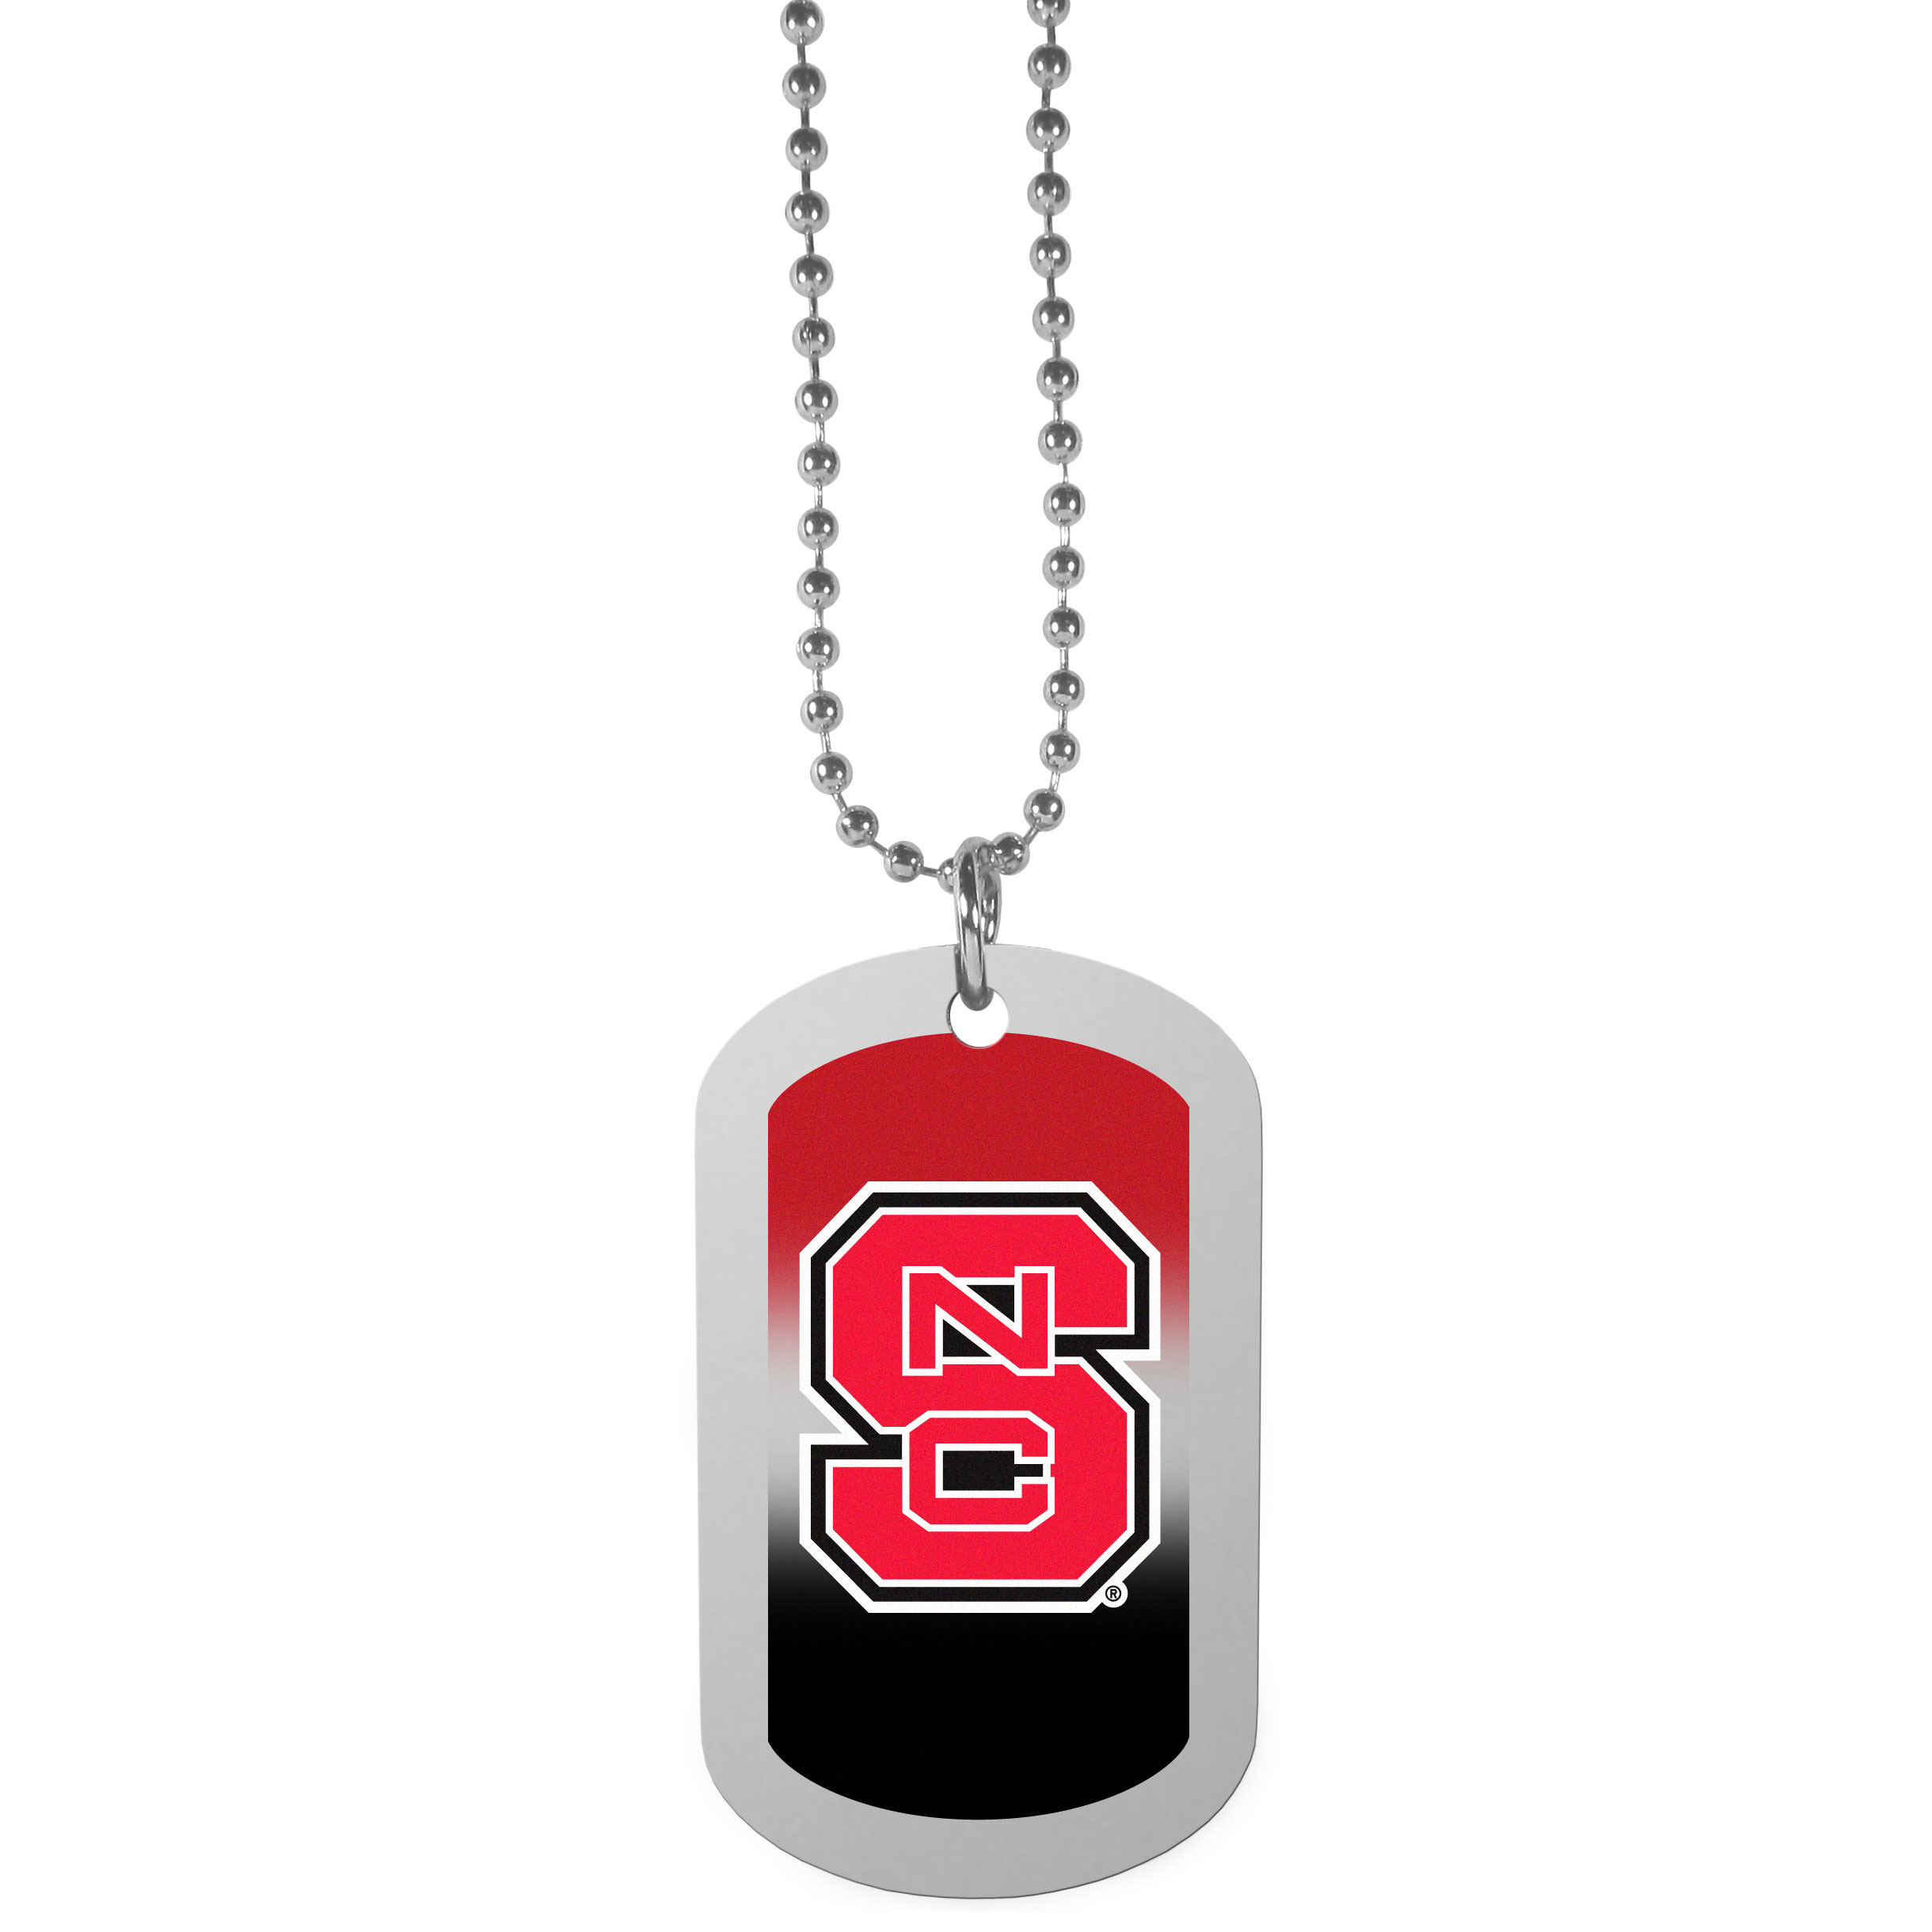 N. Carolina St. Wolfpack Team Tag Necklace - Dog tag necklaces are a fashion statement that is here to stay. The sporty version of the classic tag features a gradient print in team colors featuring a full color team logo over a high polish tag to create a bold and sporty look. The tag comes on a 26 inch ball chain with a ball and joint clasp. Any N. Carolina St. Wolfpack would be proud to wear this attractive fashion accessory.